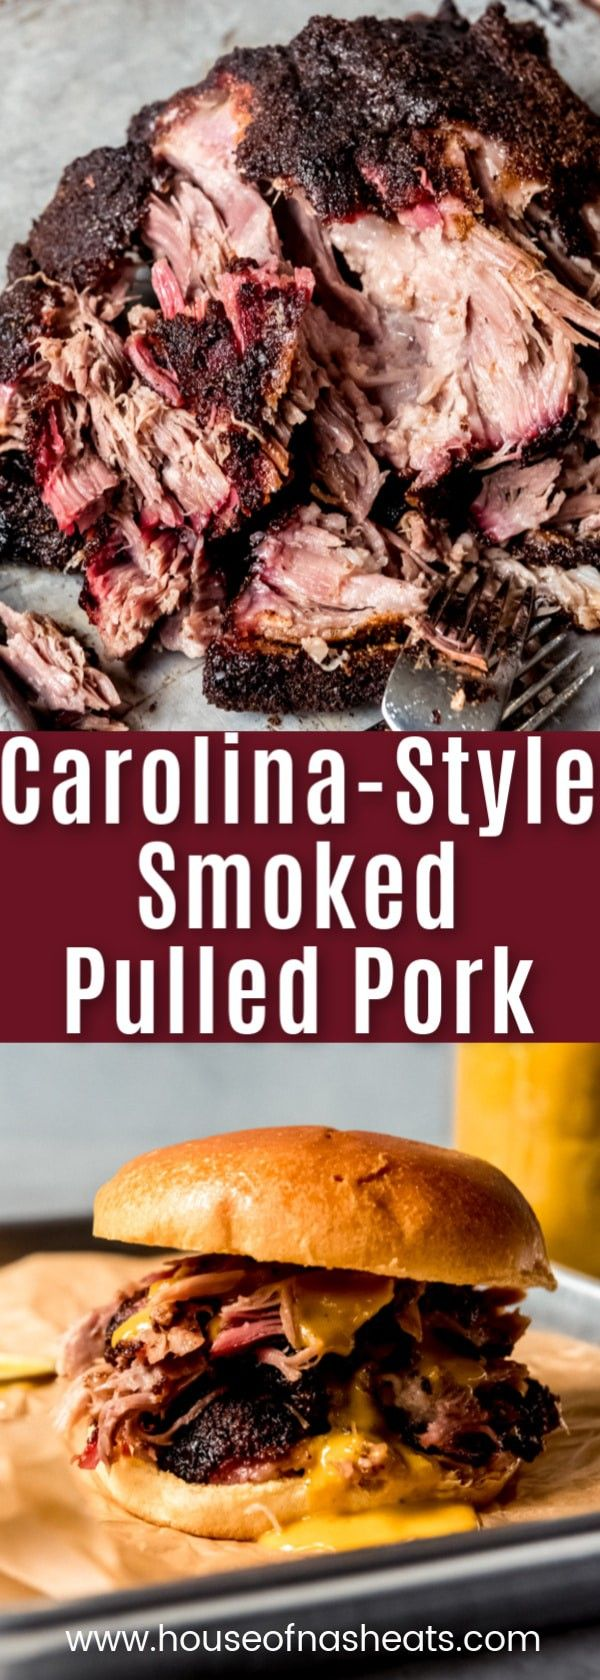 This Carolina-style Smoked Pulled Pork recipe is made with a pork shoulder (aka Boston butt) in a wood smoker or pellet grill using a homemade, easy barbecue spice rub made from pantry ingredients you already have on hand.  Smoked low and slow, this recipe makes the best pulled pork sandwiches ever! #pulledpork #sandwiches #pork #smoked #smoker #meat #grilling #summer #bbq #barbecue #southcarolina #carolina #tender #juicy #easy #simple #porkbutt